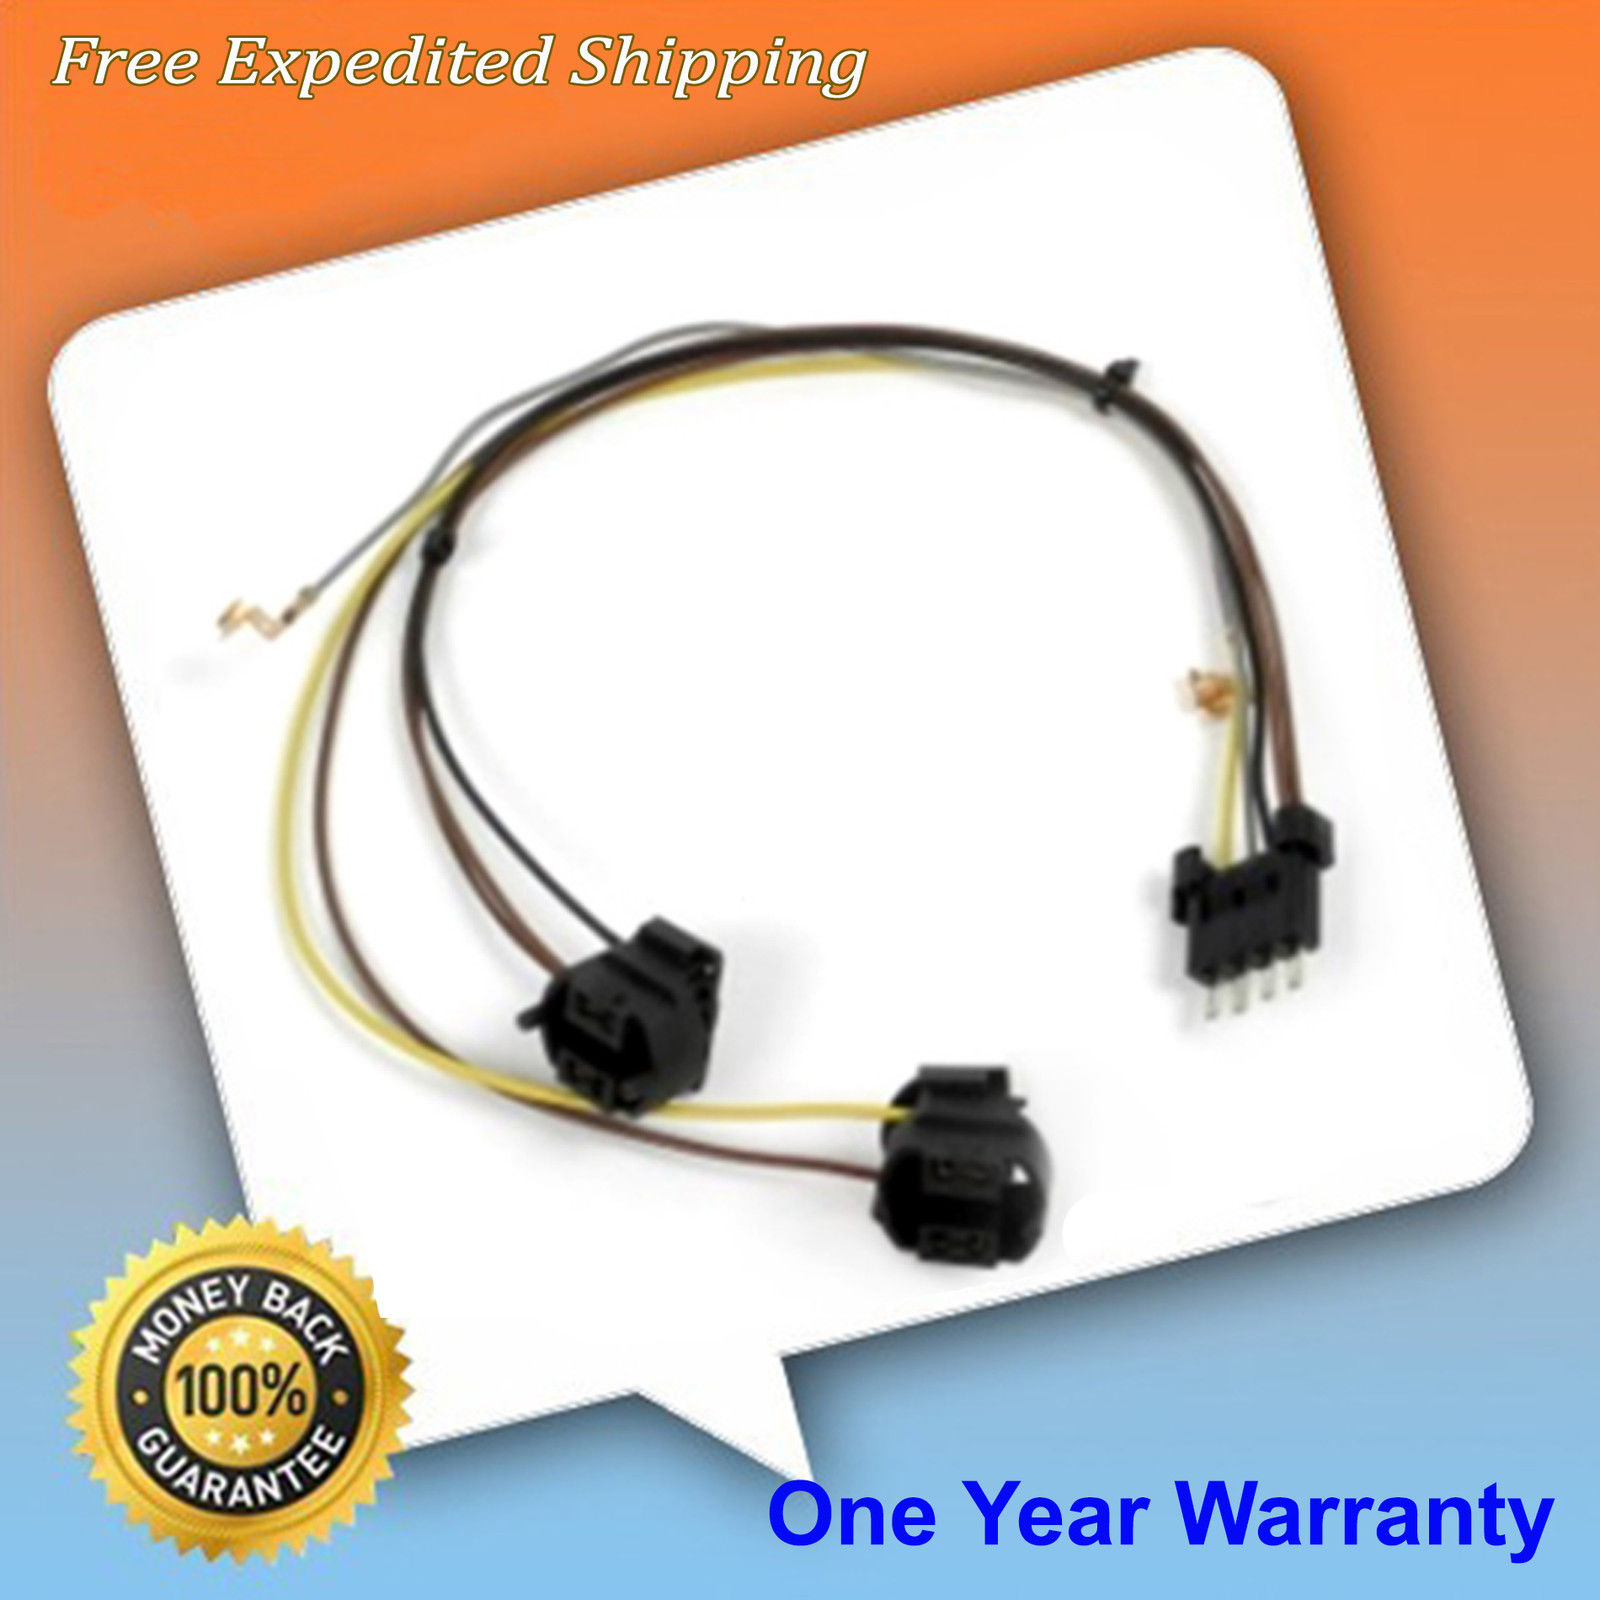 hight resolution of details about for w164 ml320 ml350 ml450 ml550 right headlight wire harness repair kit d125r